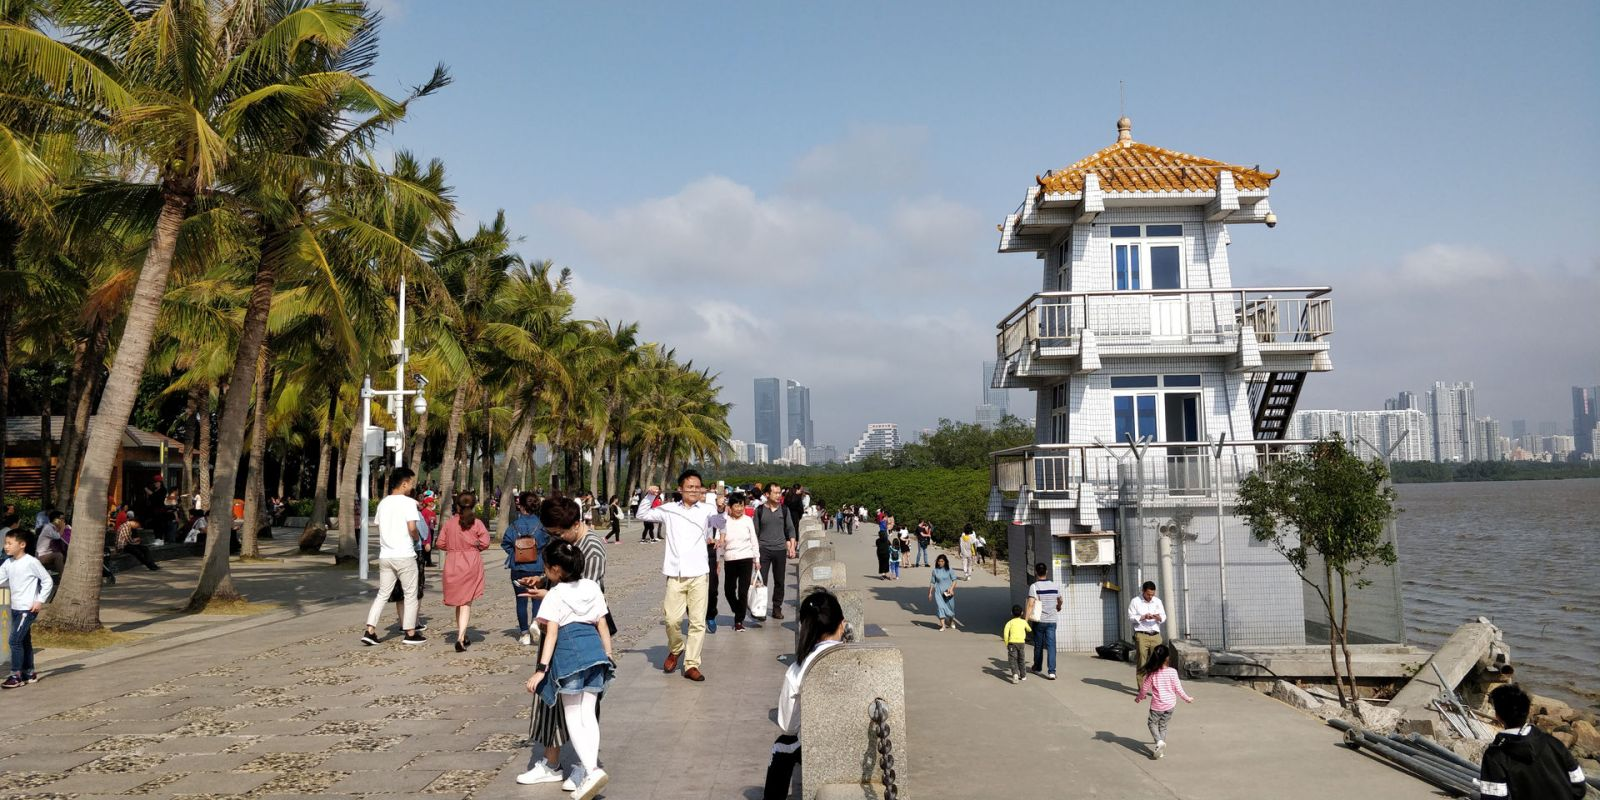 Shenzhen Coastal Ecological Park